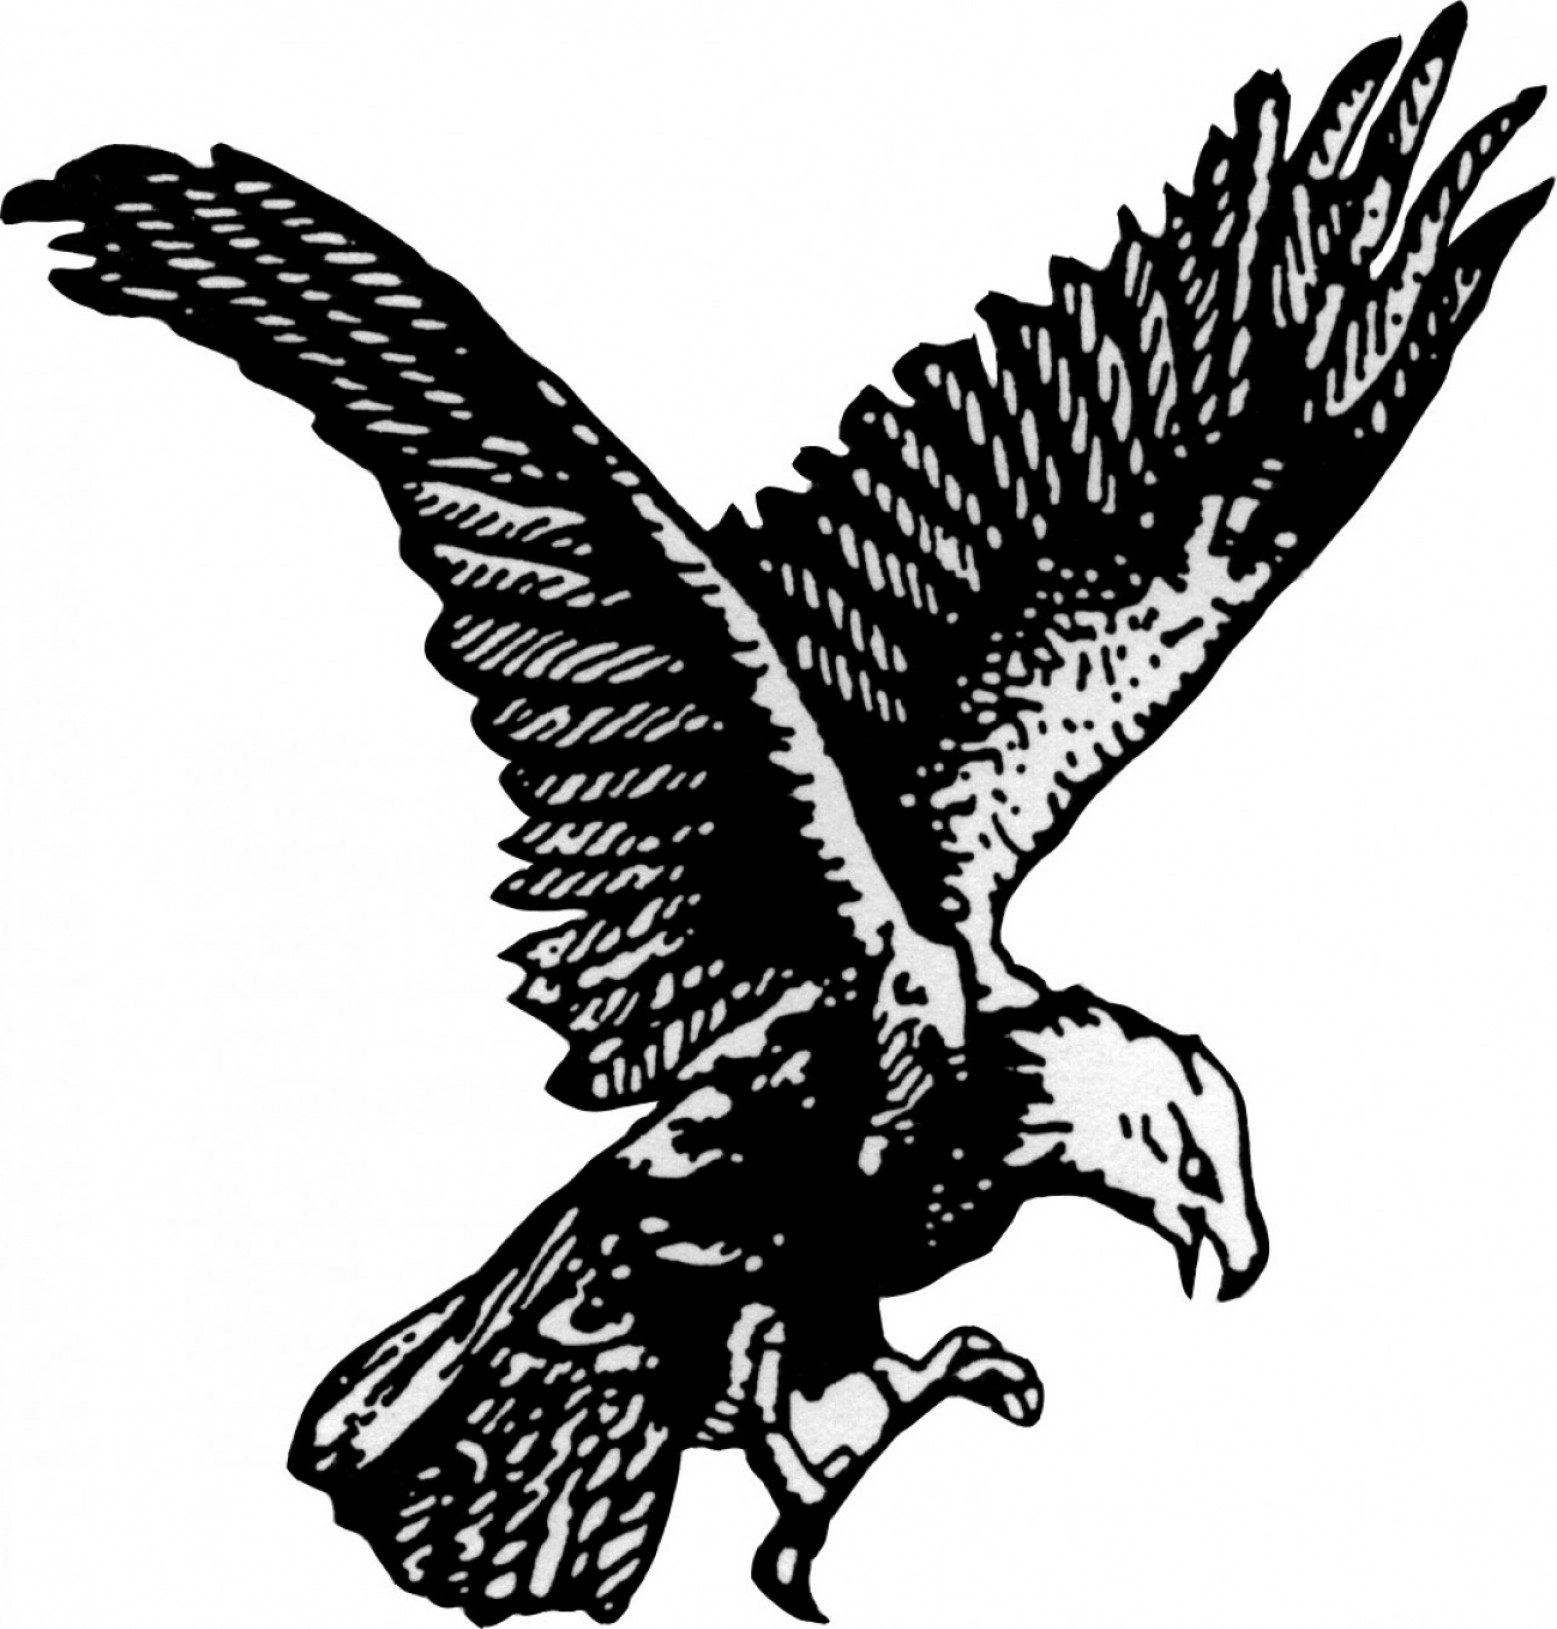 Flying eagle clipart black and white. Soaring vector art savoyuptown